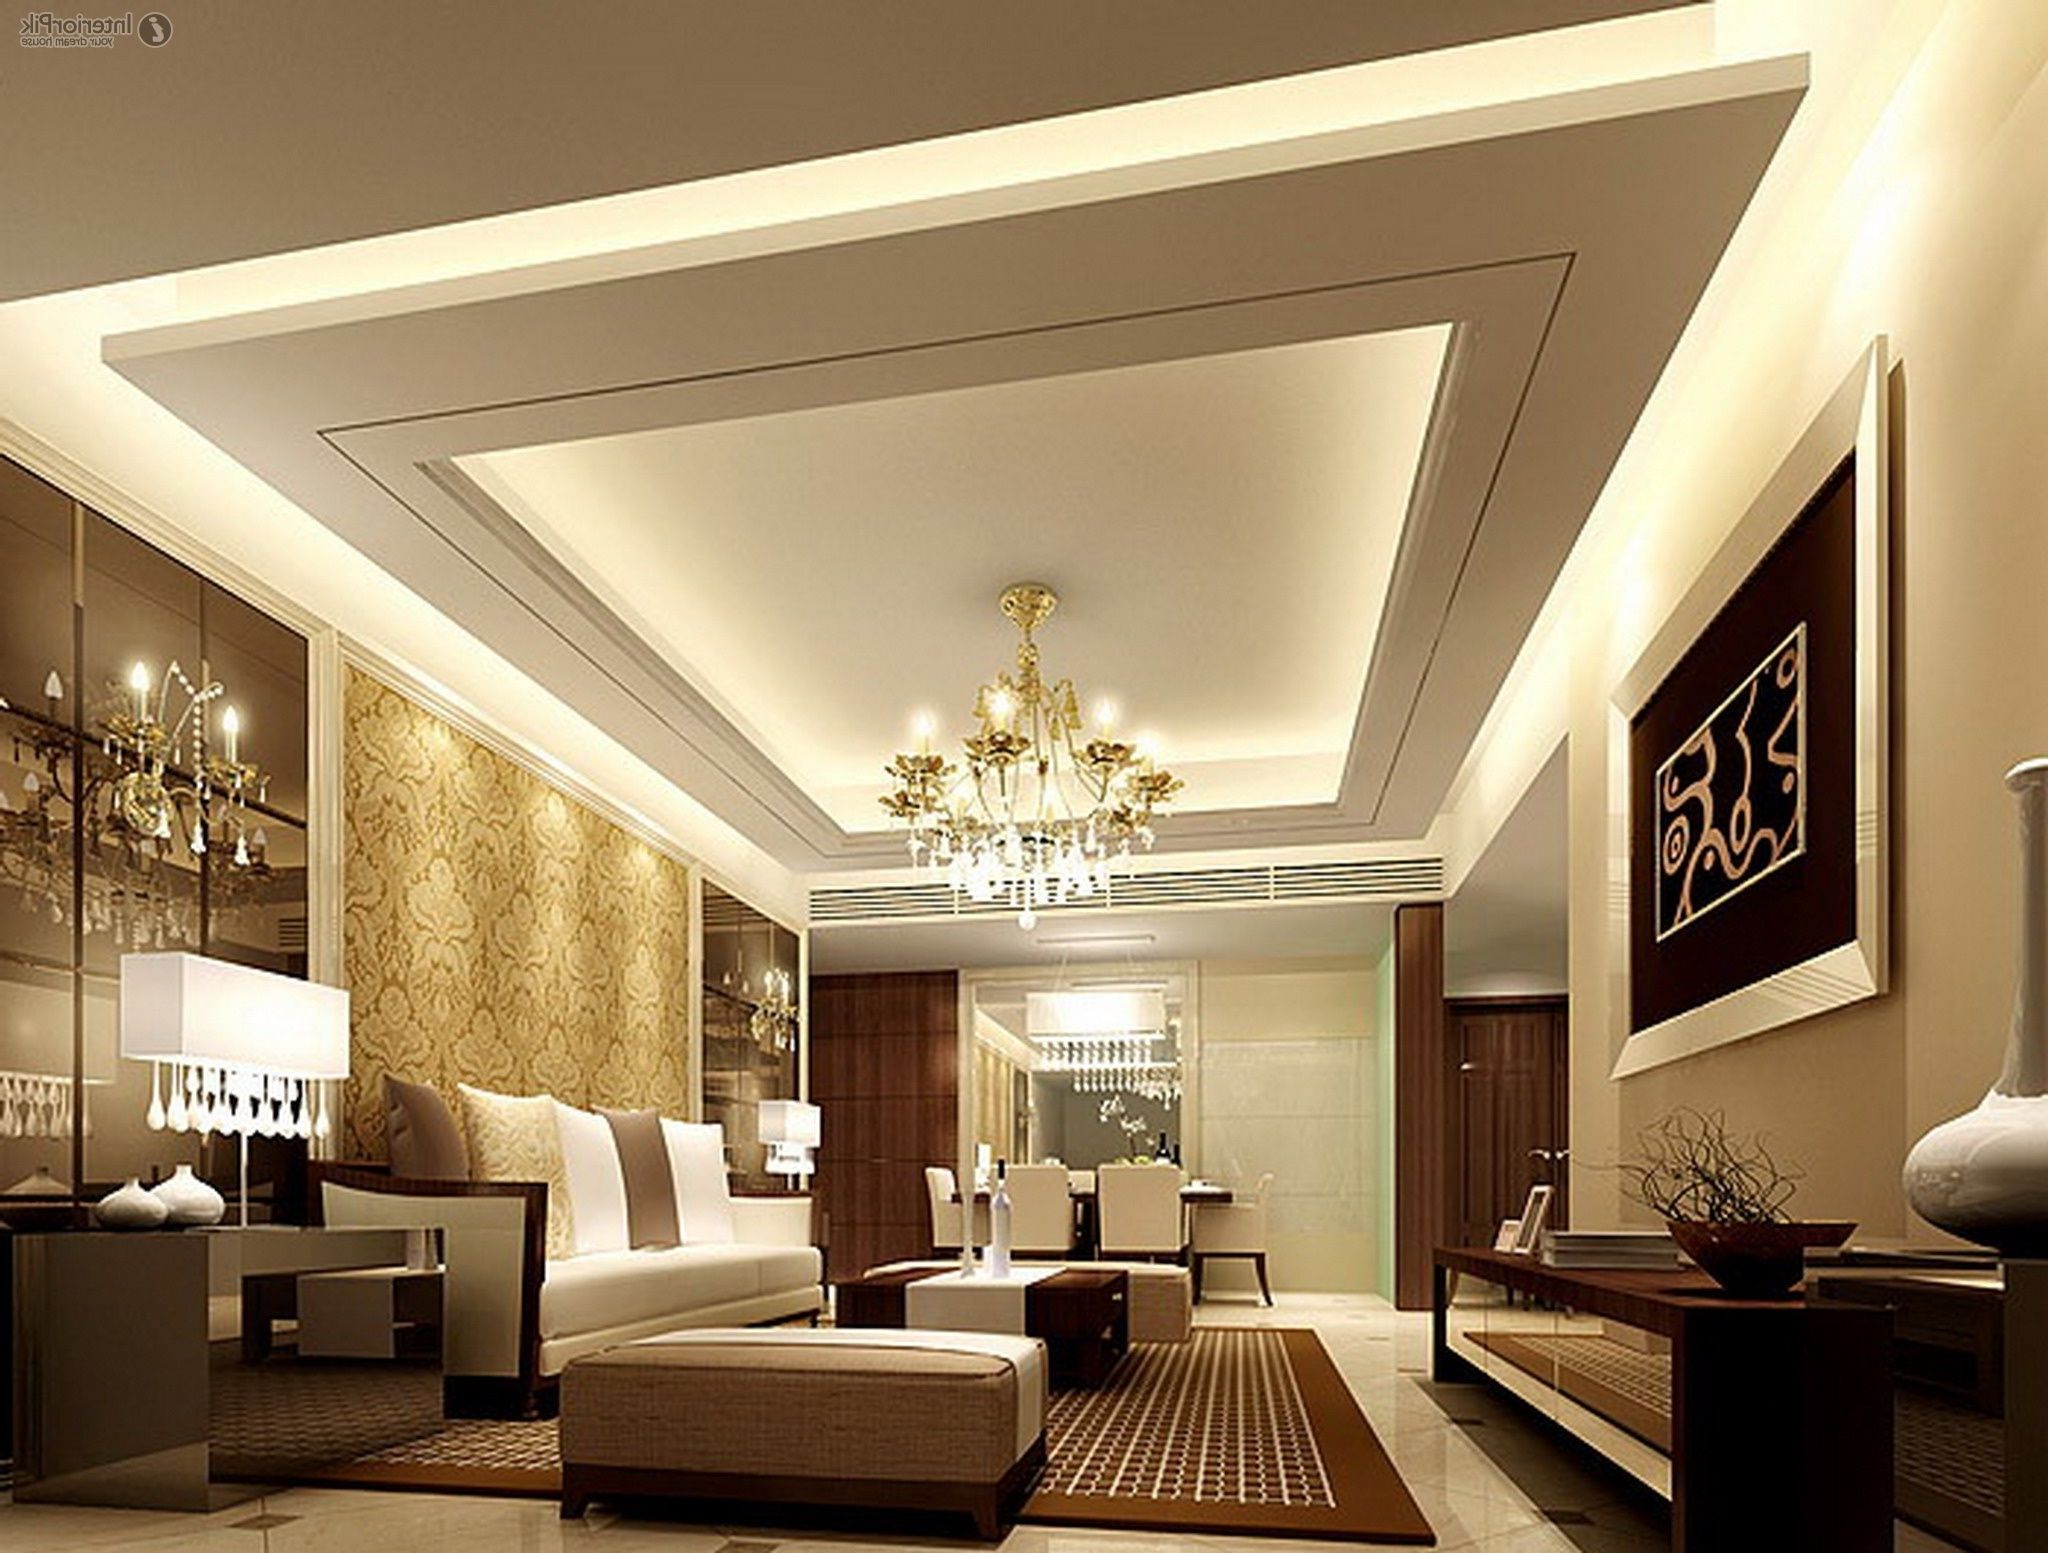 Exceptional Gypsum Ceiling Design For Living Room Lighting Home Decorate Best Living  Room Ceiling Design